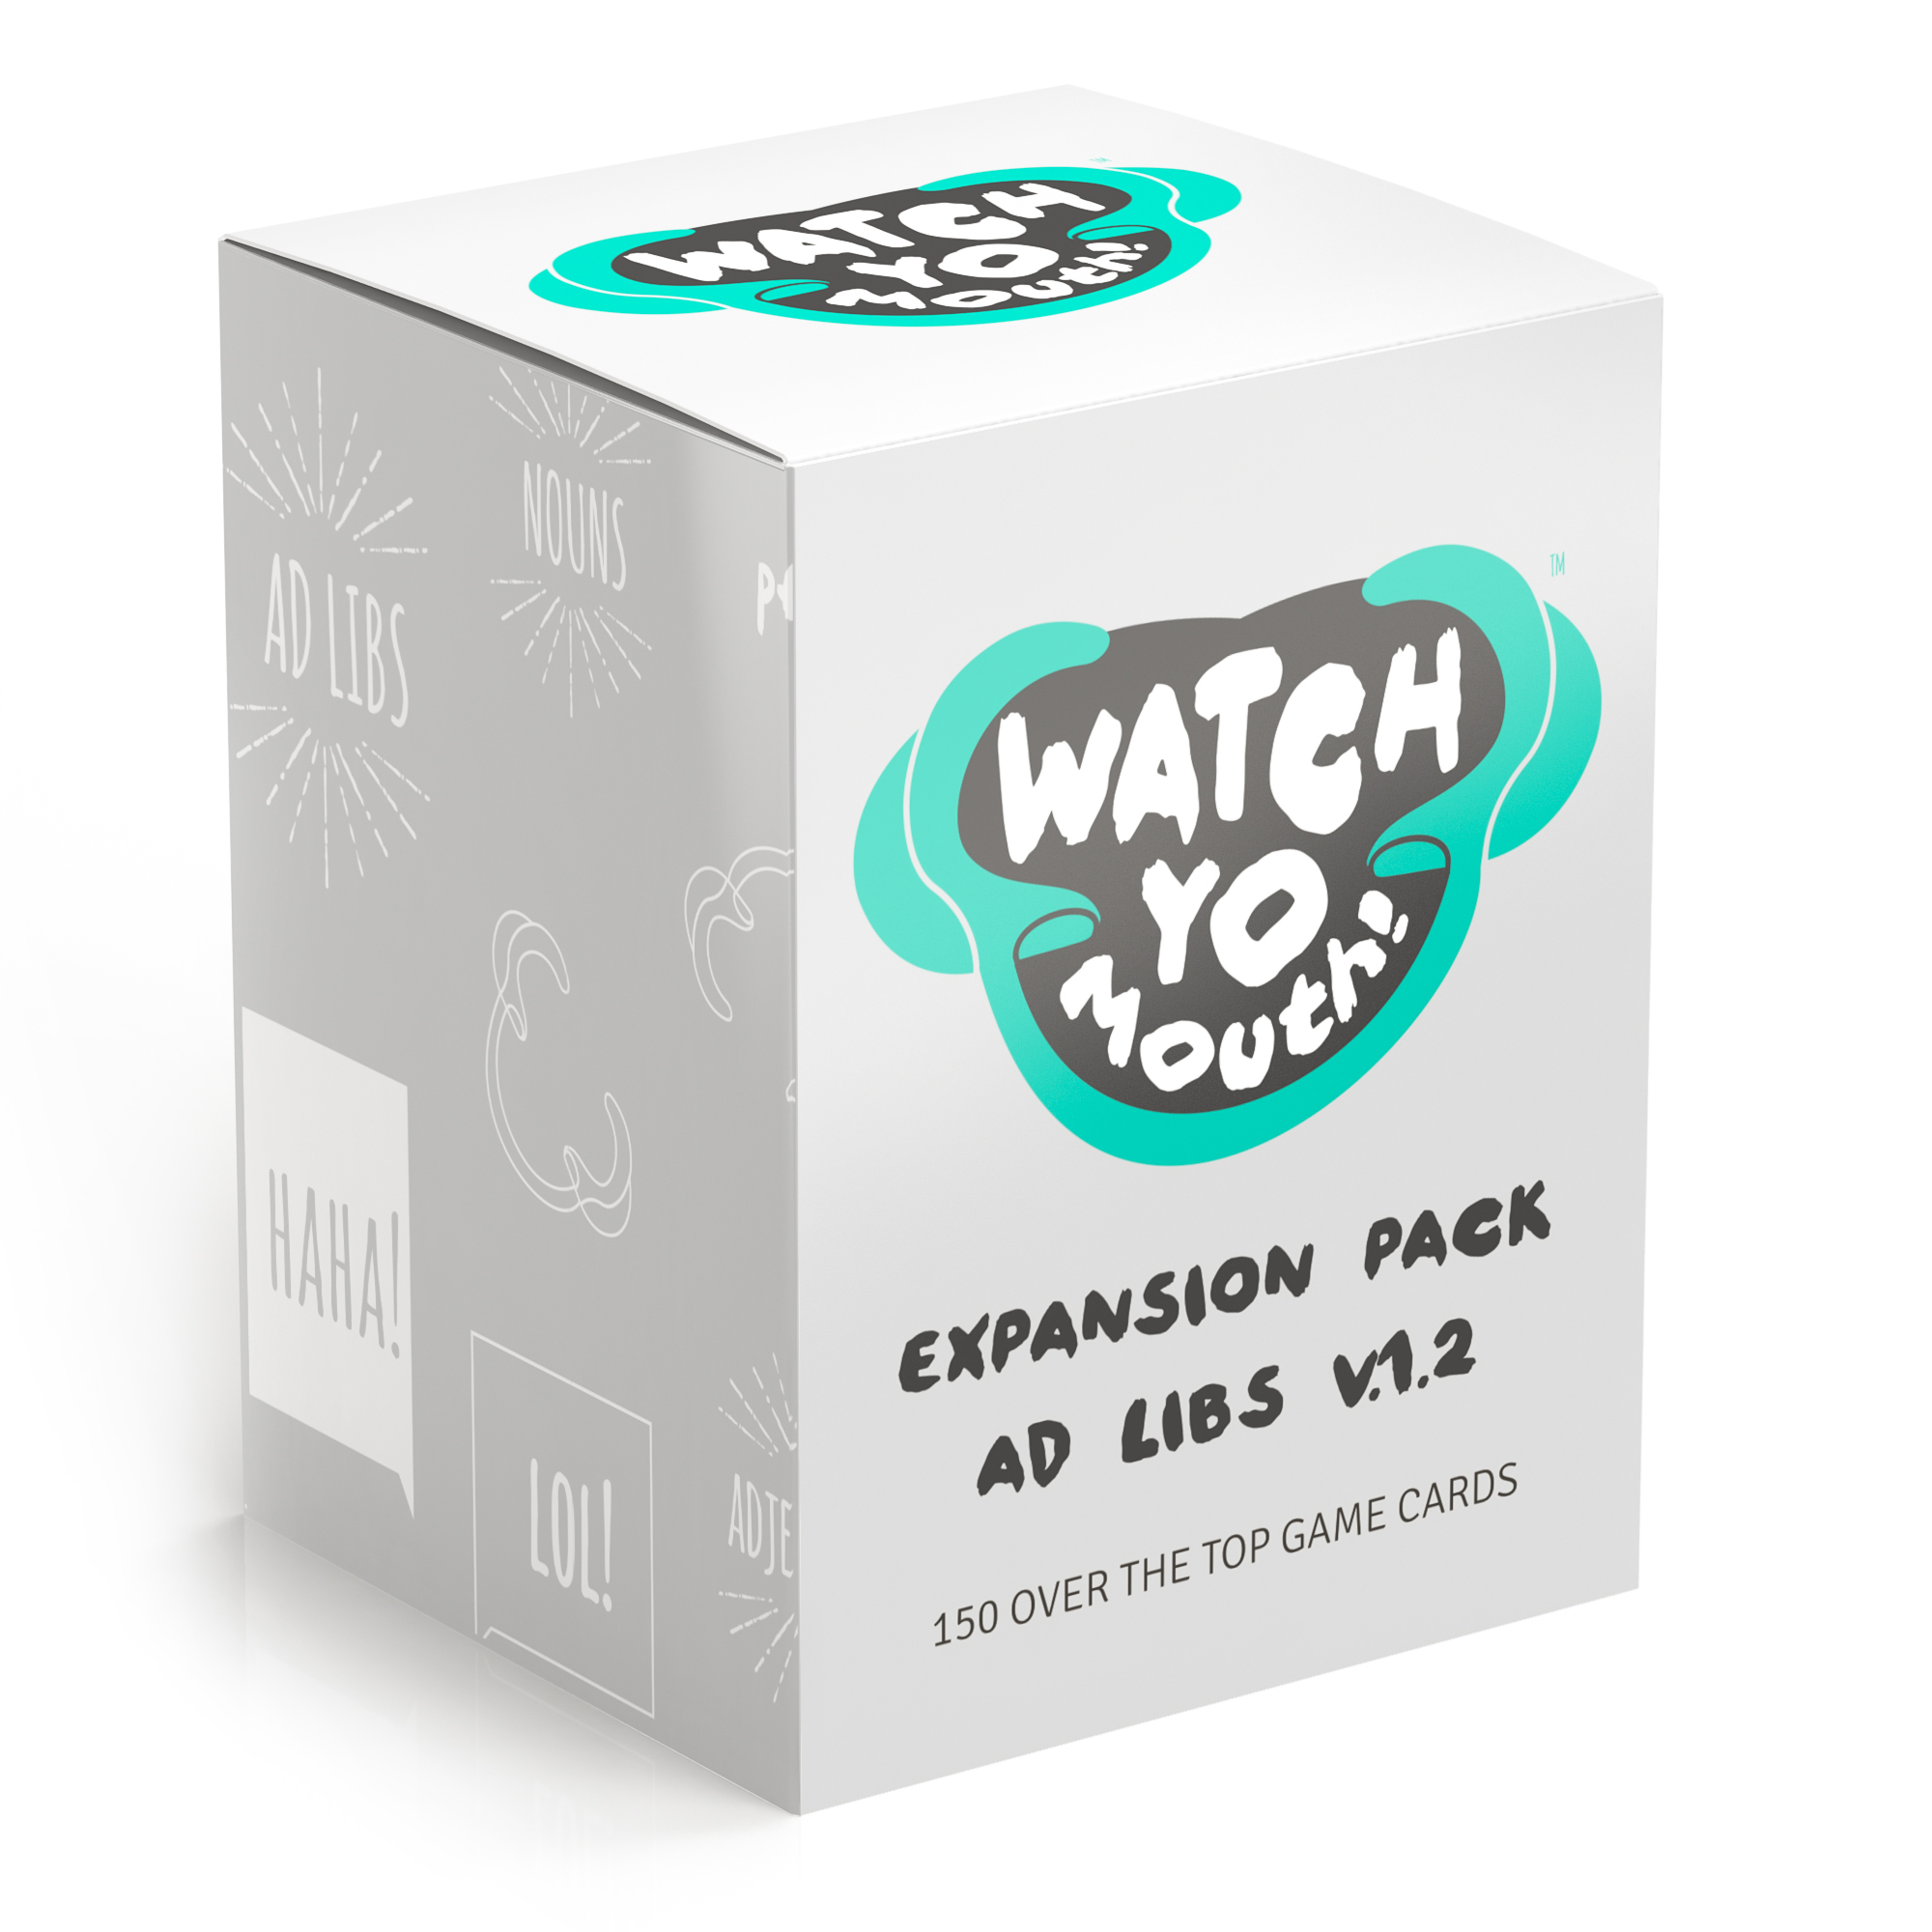 Watch Yo Mouth Ad Libs Expansion Packs